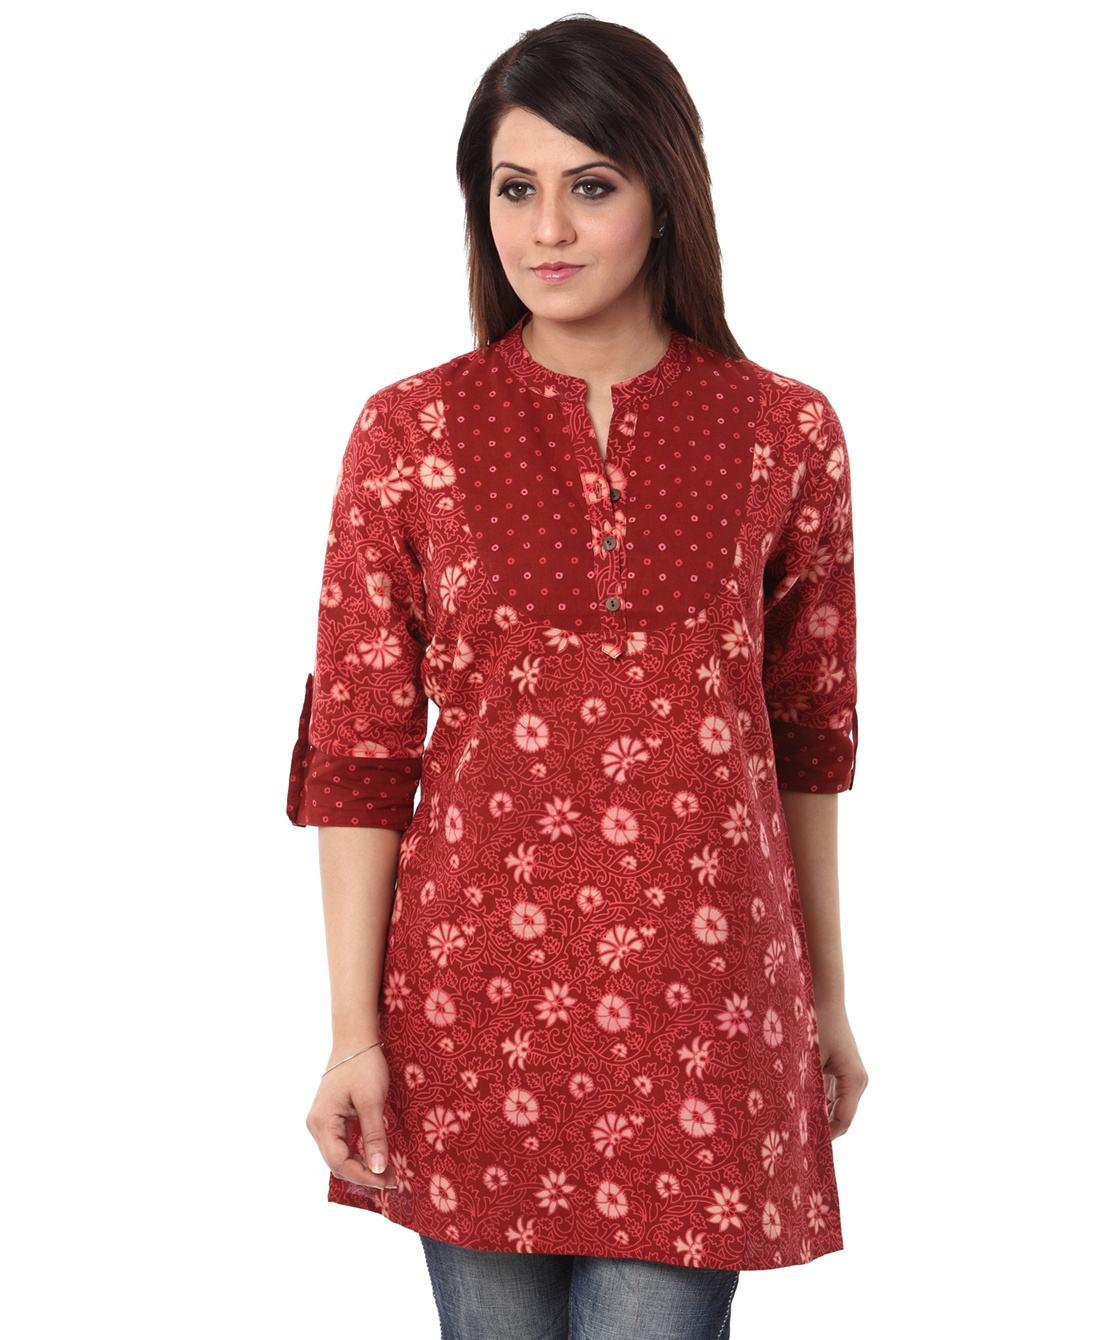 floral jal tunic with bandhej yoke